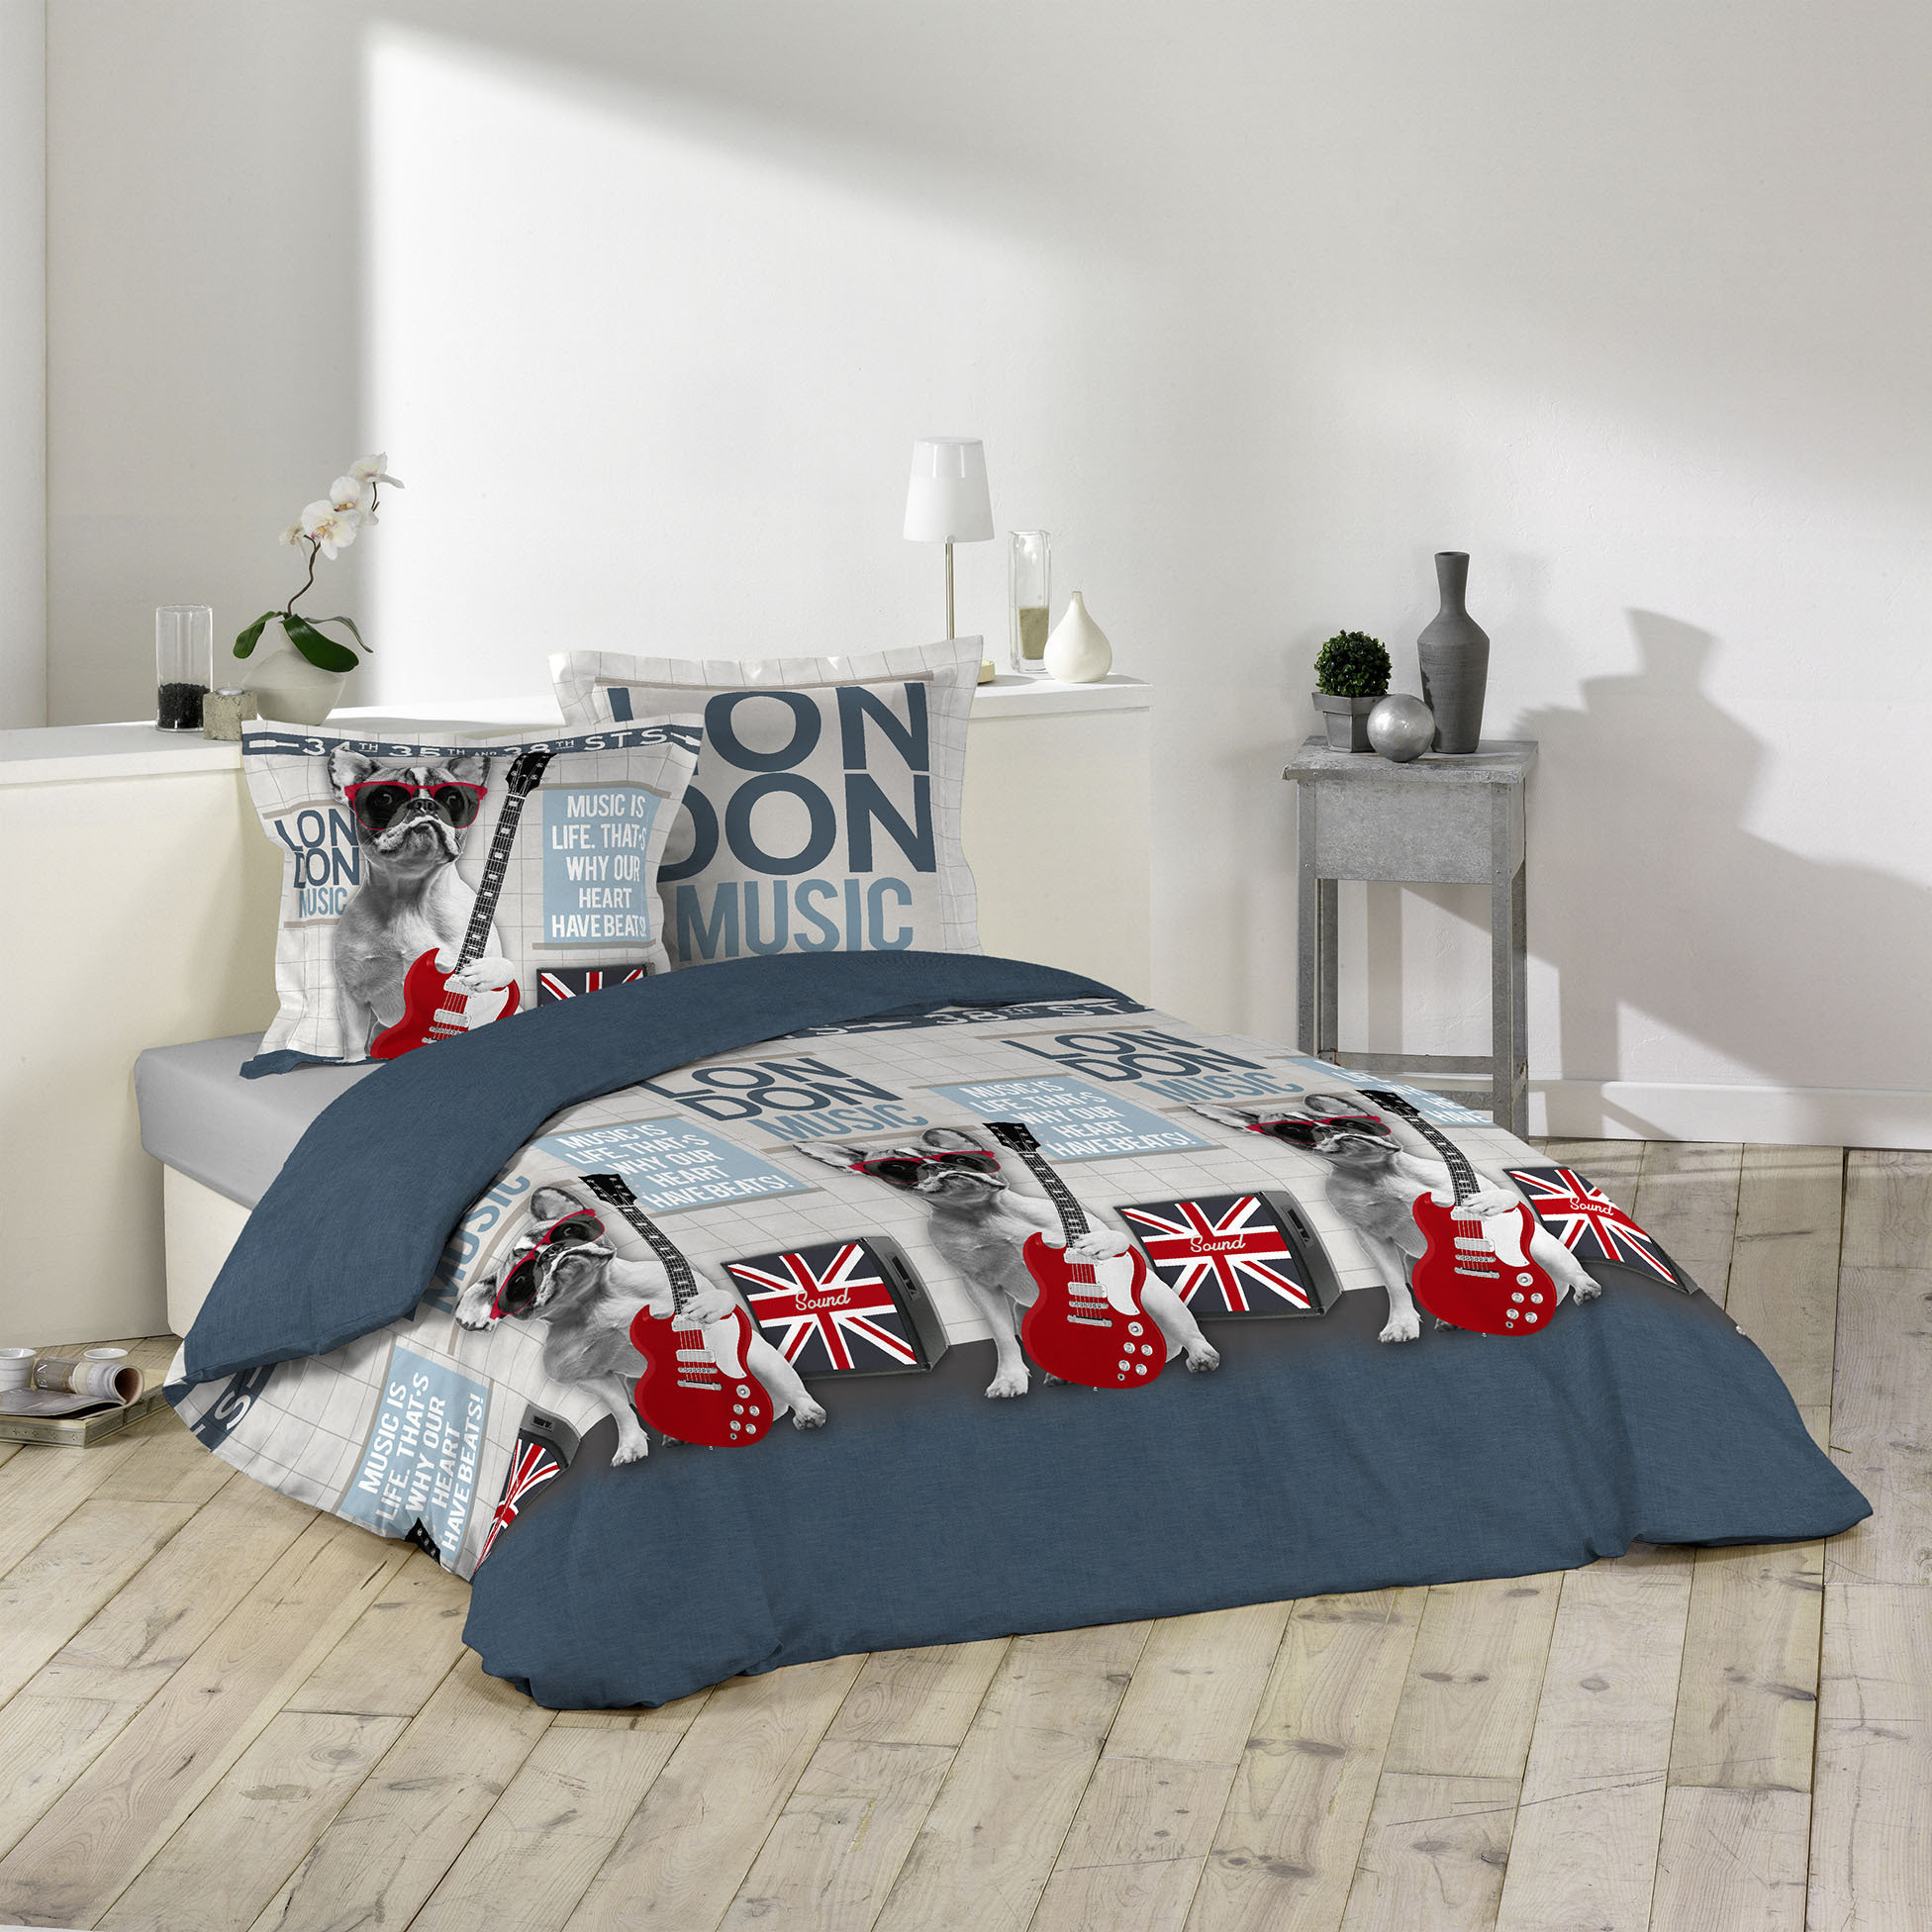 3tlg bettw sche london 240x220 franz sische bulldogge bett decke bergr e m bel wohnen. Black Bedroom Furniture Sets. Home Design Ideas